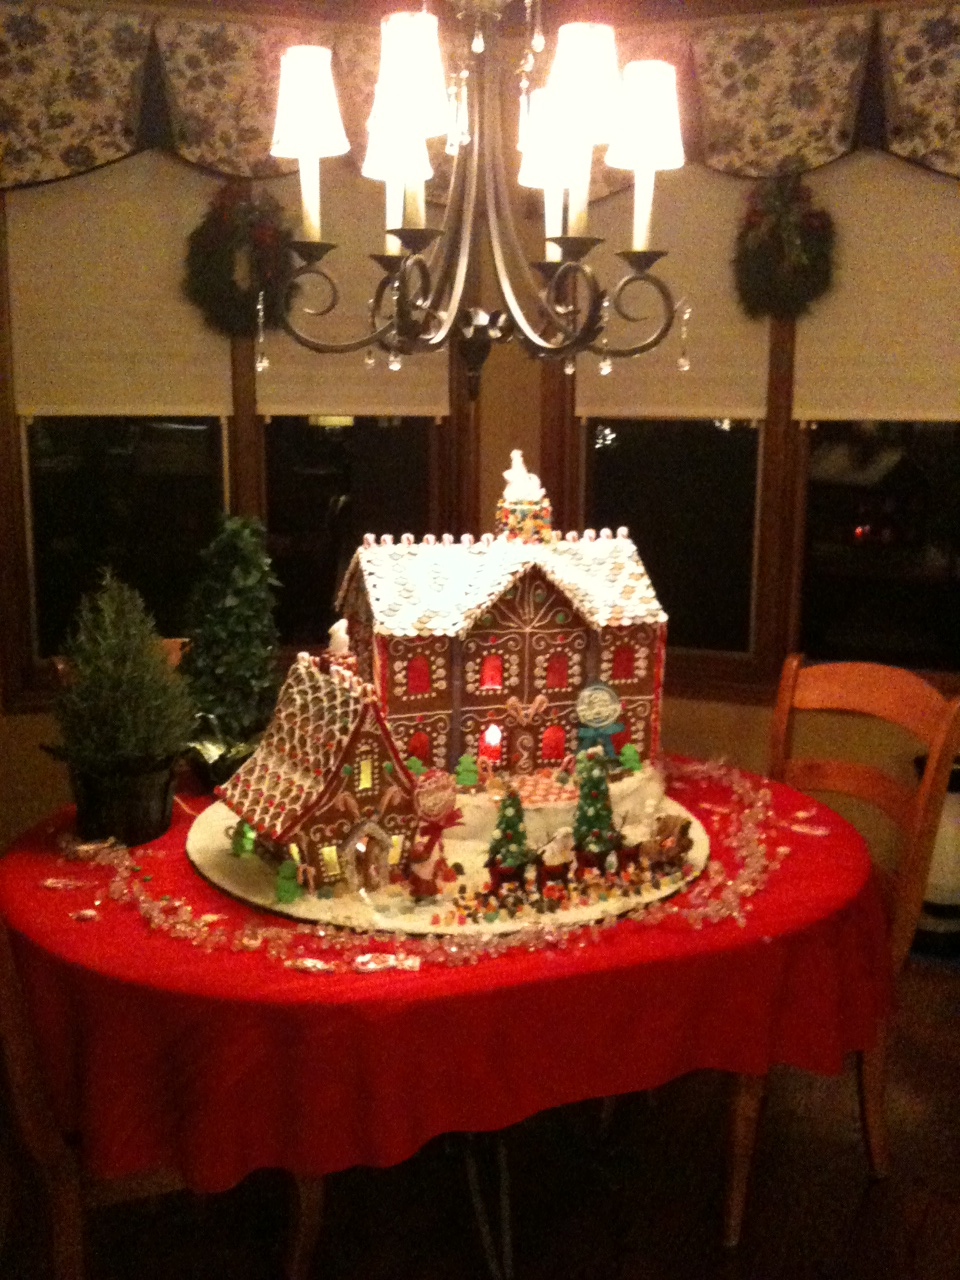 The Yehlings' Santa's Village 2